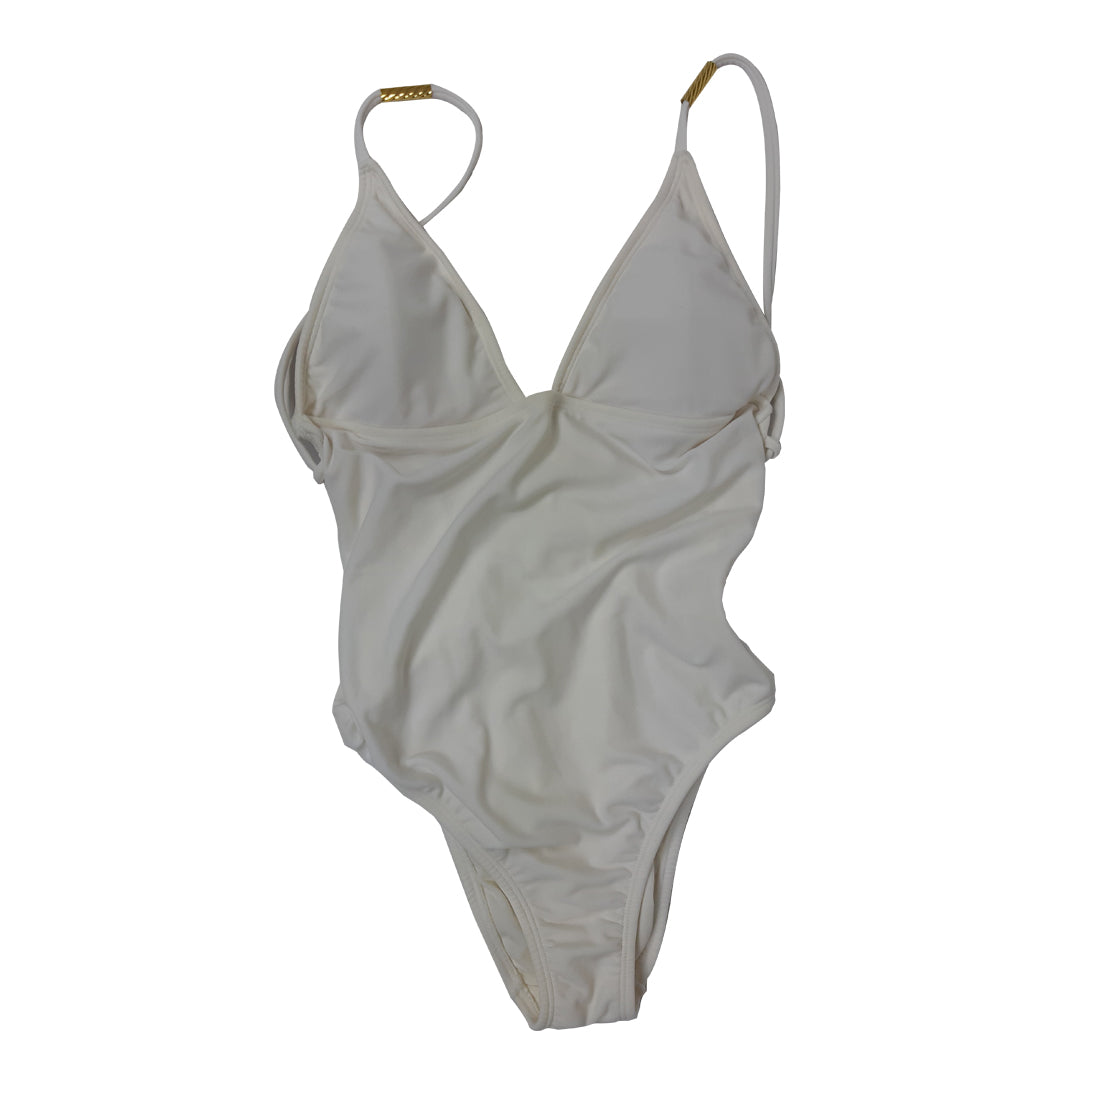 Lenny Swimsuit in White with Golden Beads  and Low Cut Back in Size S